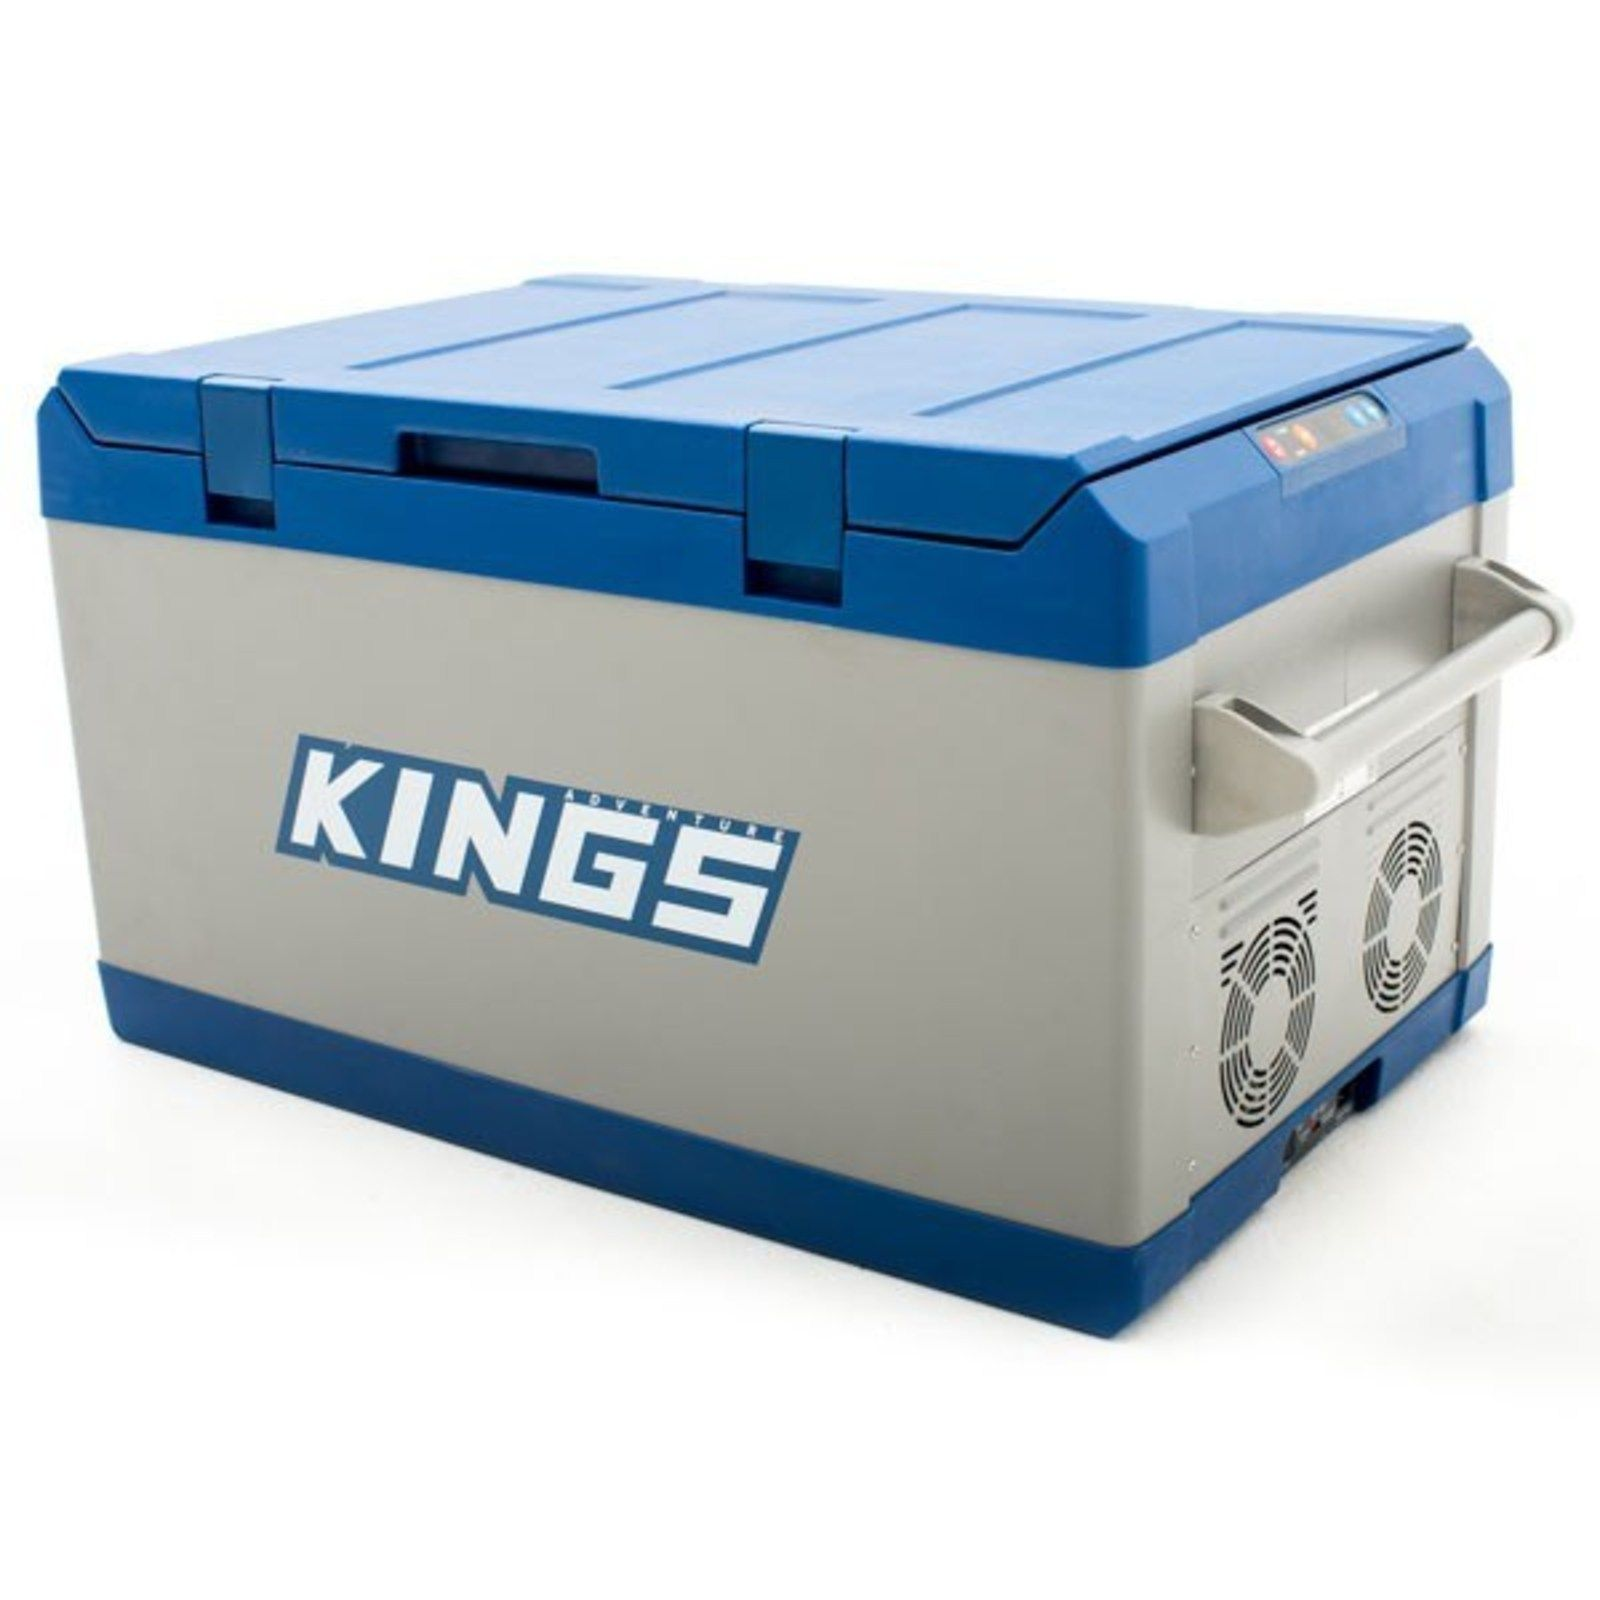 4wd Supacentre Announces Launch Of Brand New Range Of Adventure Kings Portable Ice Boxes Ice Box Food Storage Containers Camping Fridge